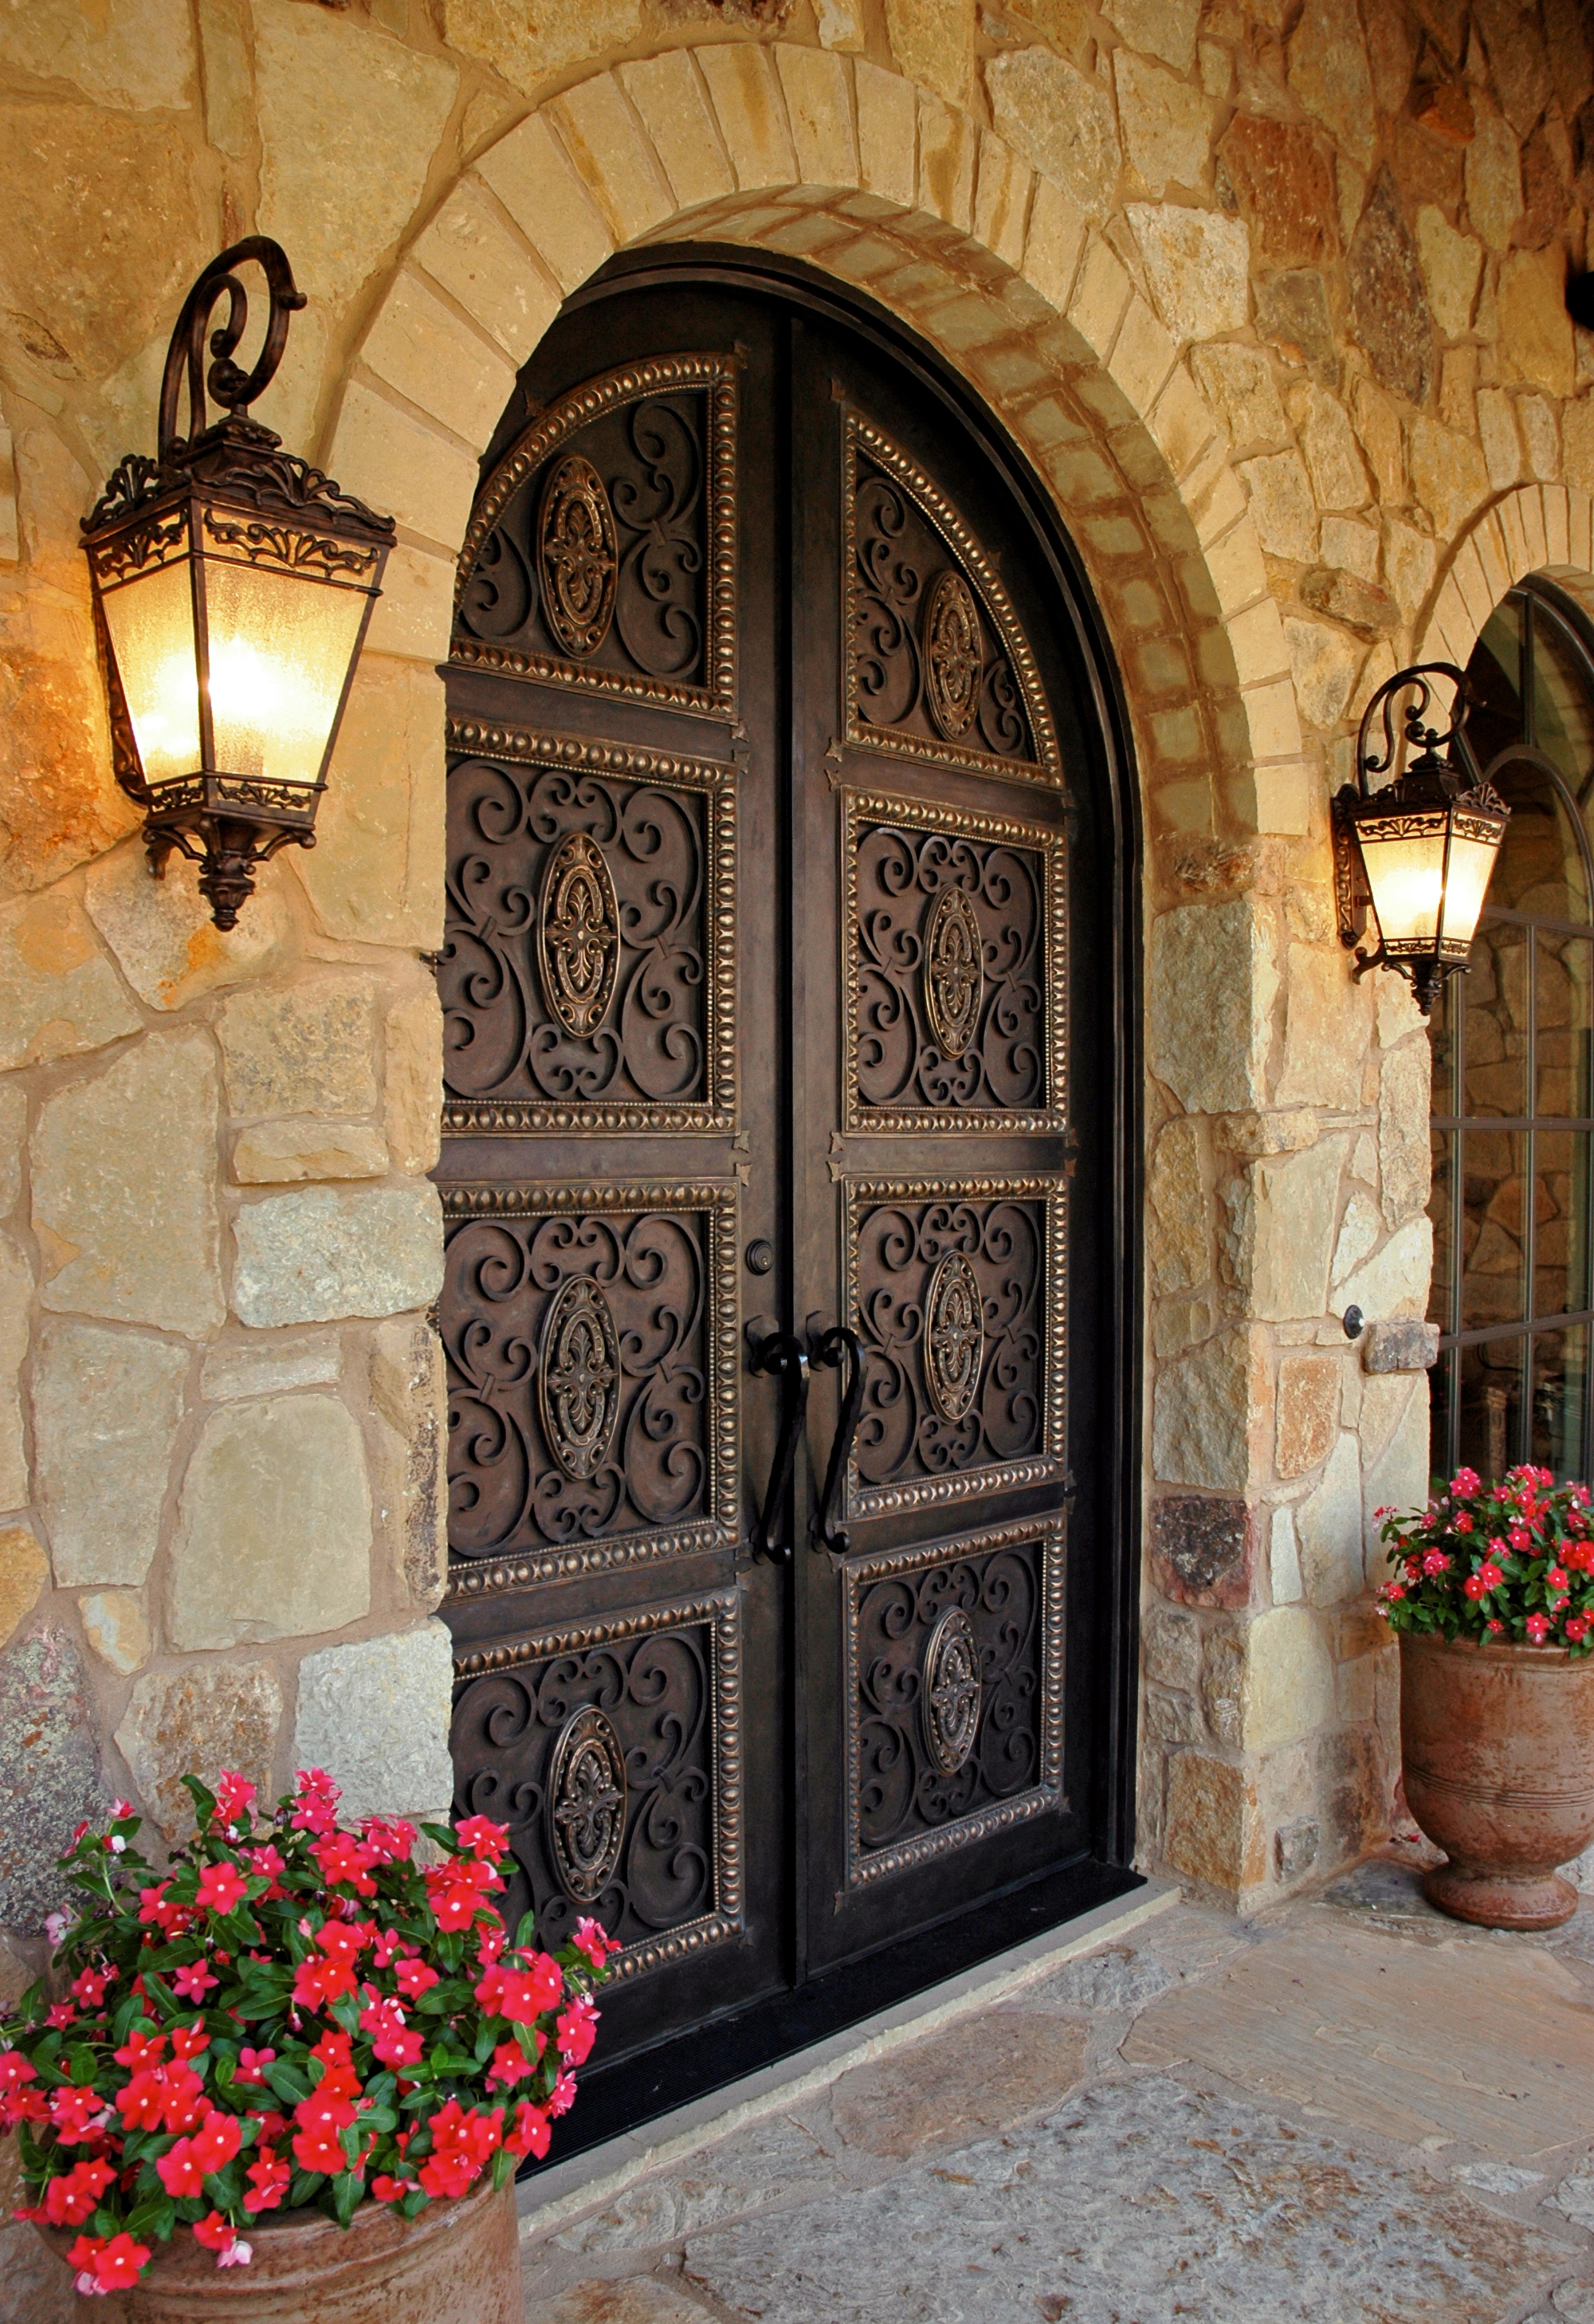 Le Meilleur Grand Doors Makes Grand Entrance In New York New Jersey Ce Mois Ci